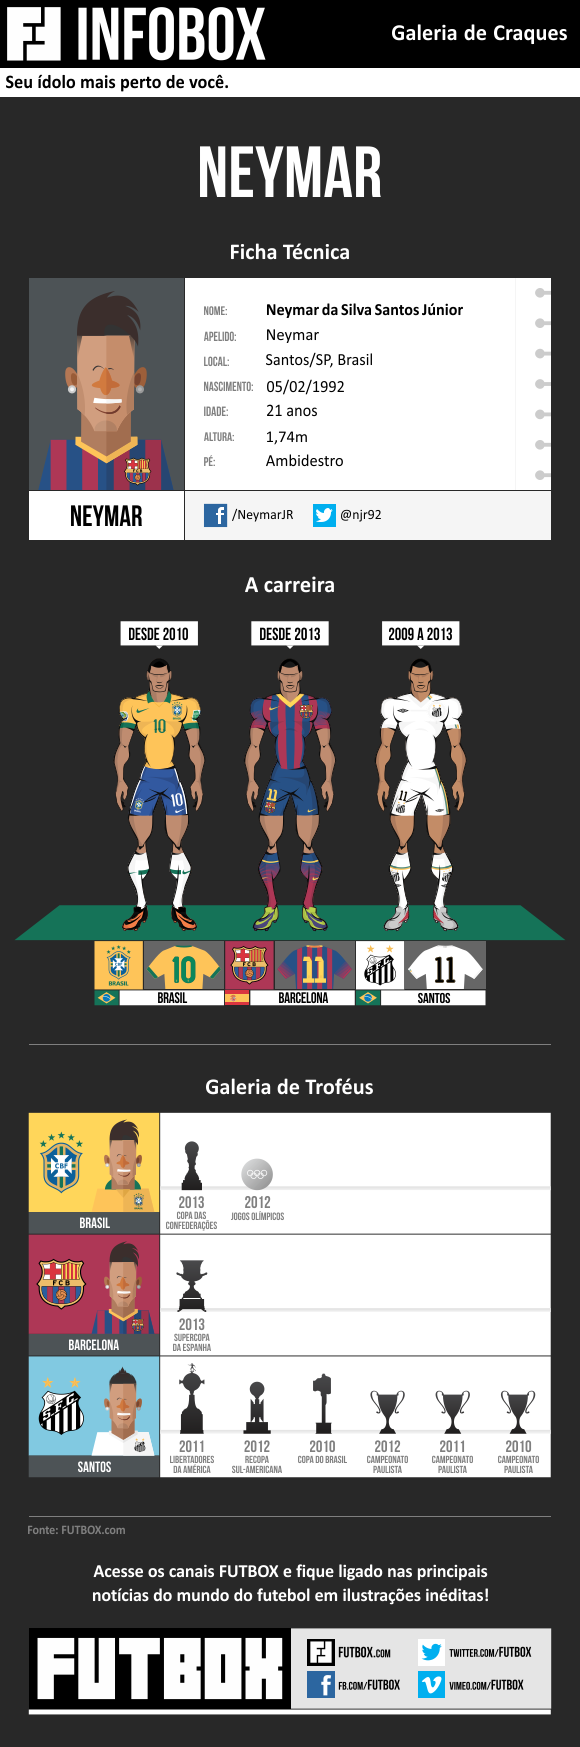 infobox_neymar_BLOG